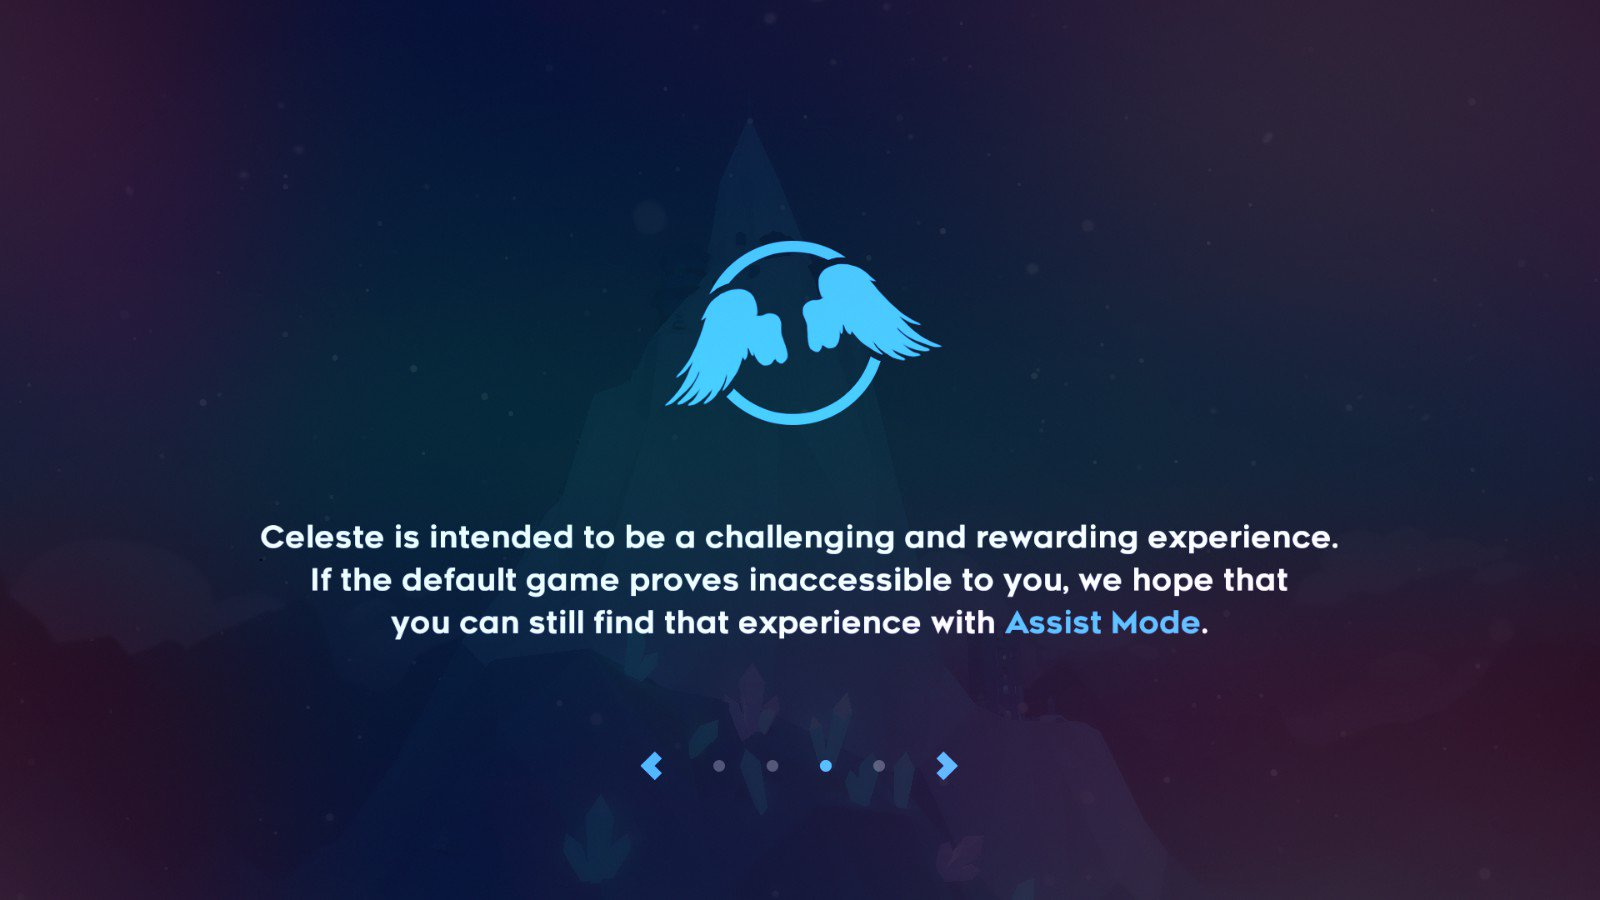 """""""Celeste is intended to be a challenging and rewarding experience. If the default game proves inaccessible to you, we hope that you can still find that experience with Assist Mode"""""""